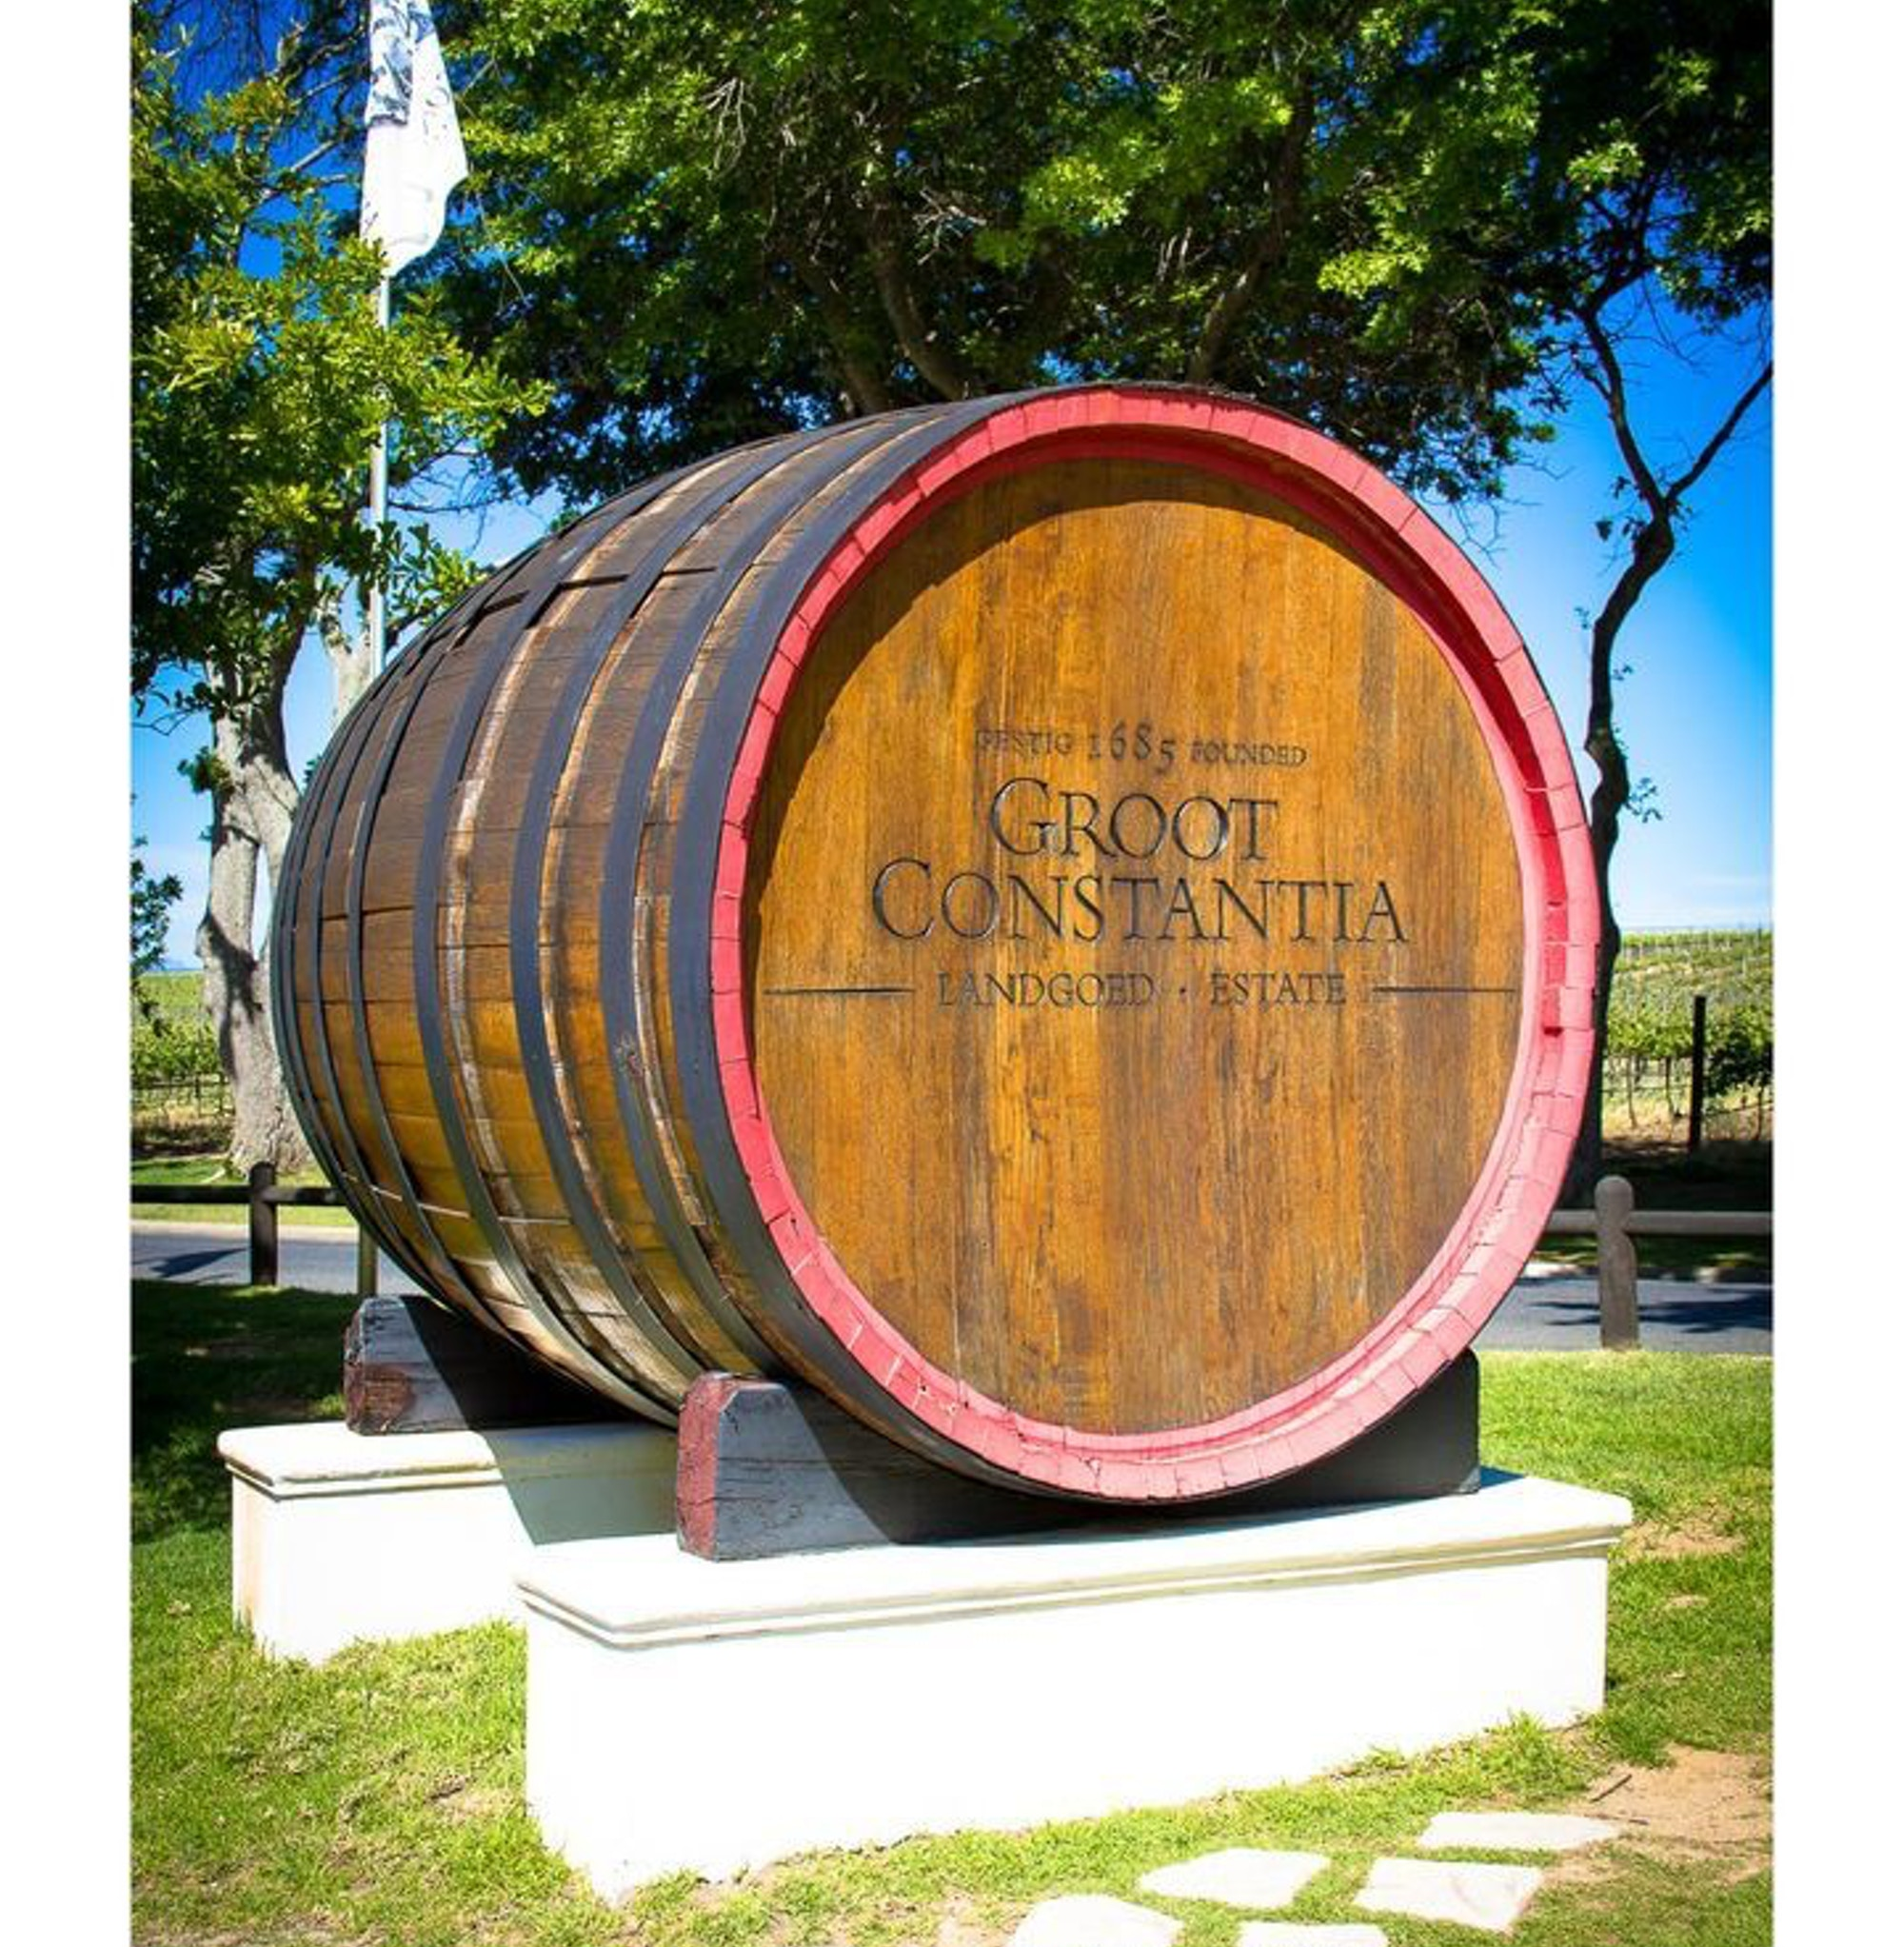 Wine Barrel at Groot Constantia